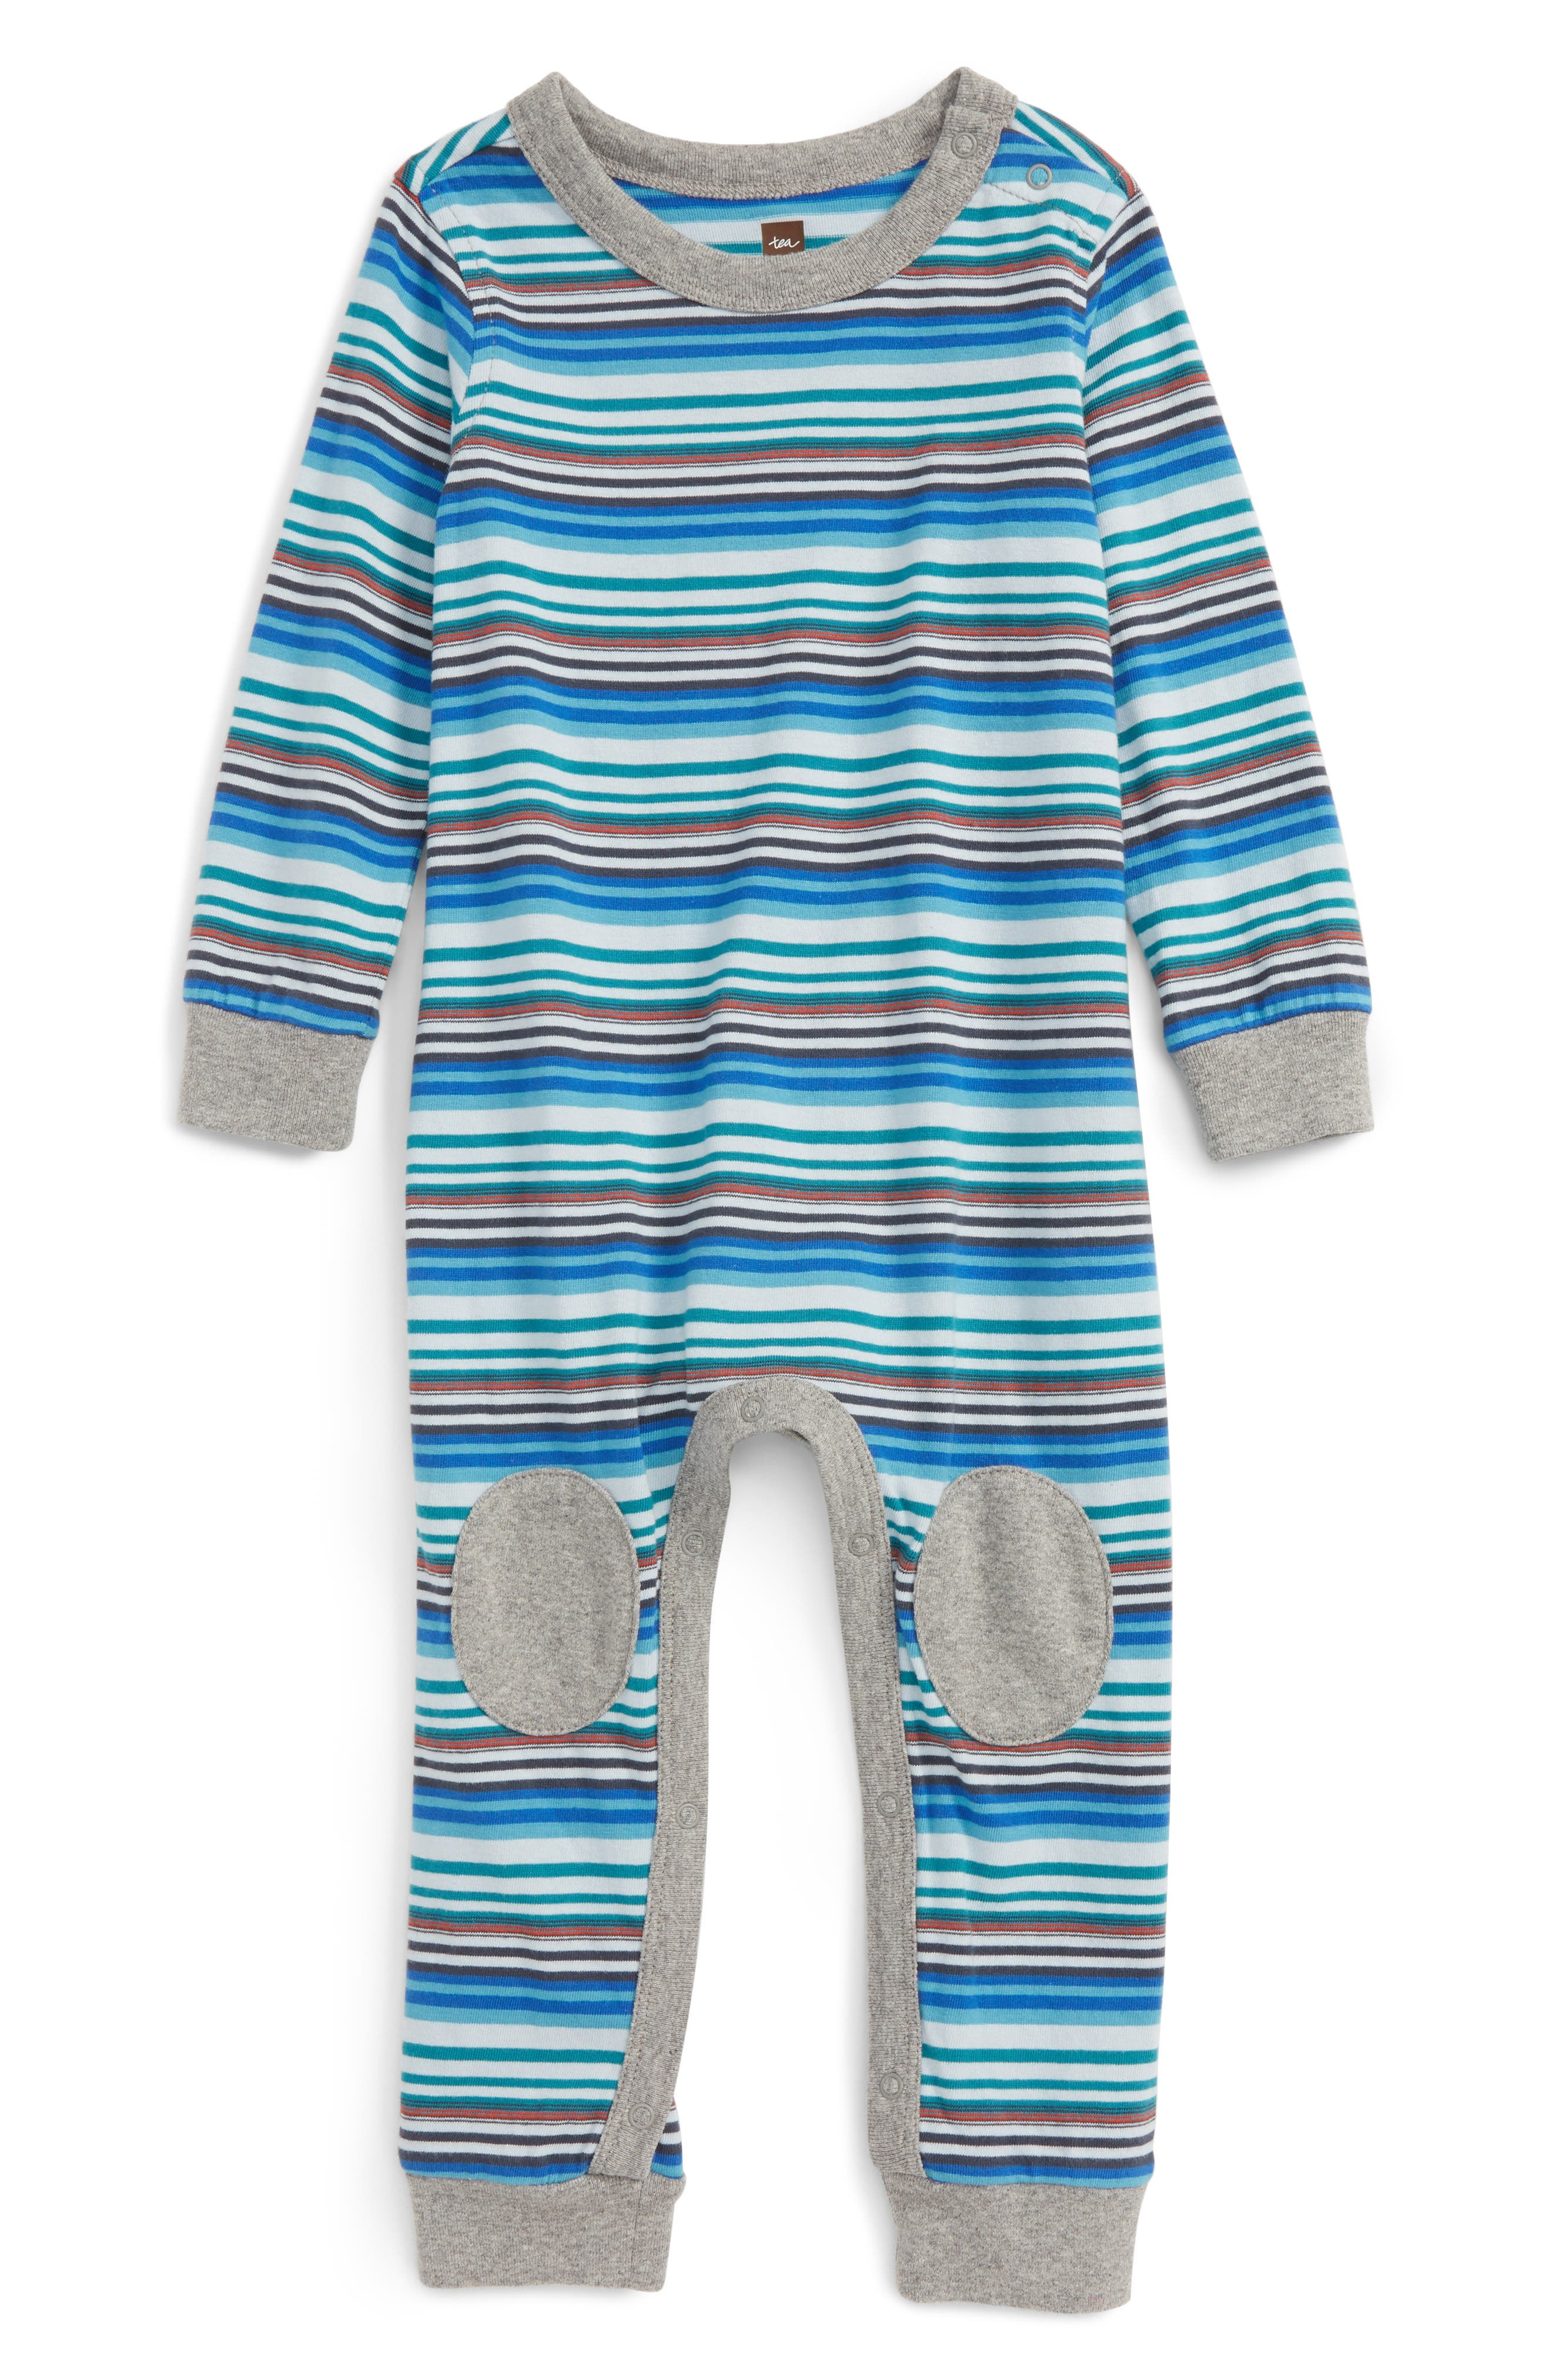 Tea Collection Fraser Knee Patches Romper (Baby Boys)